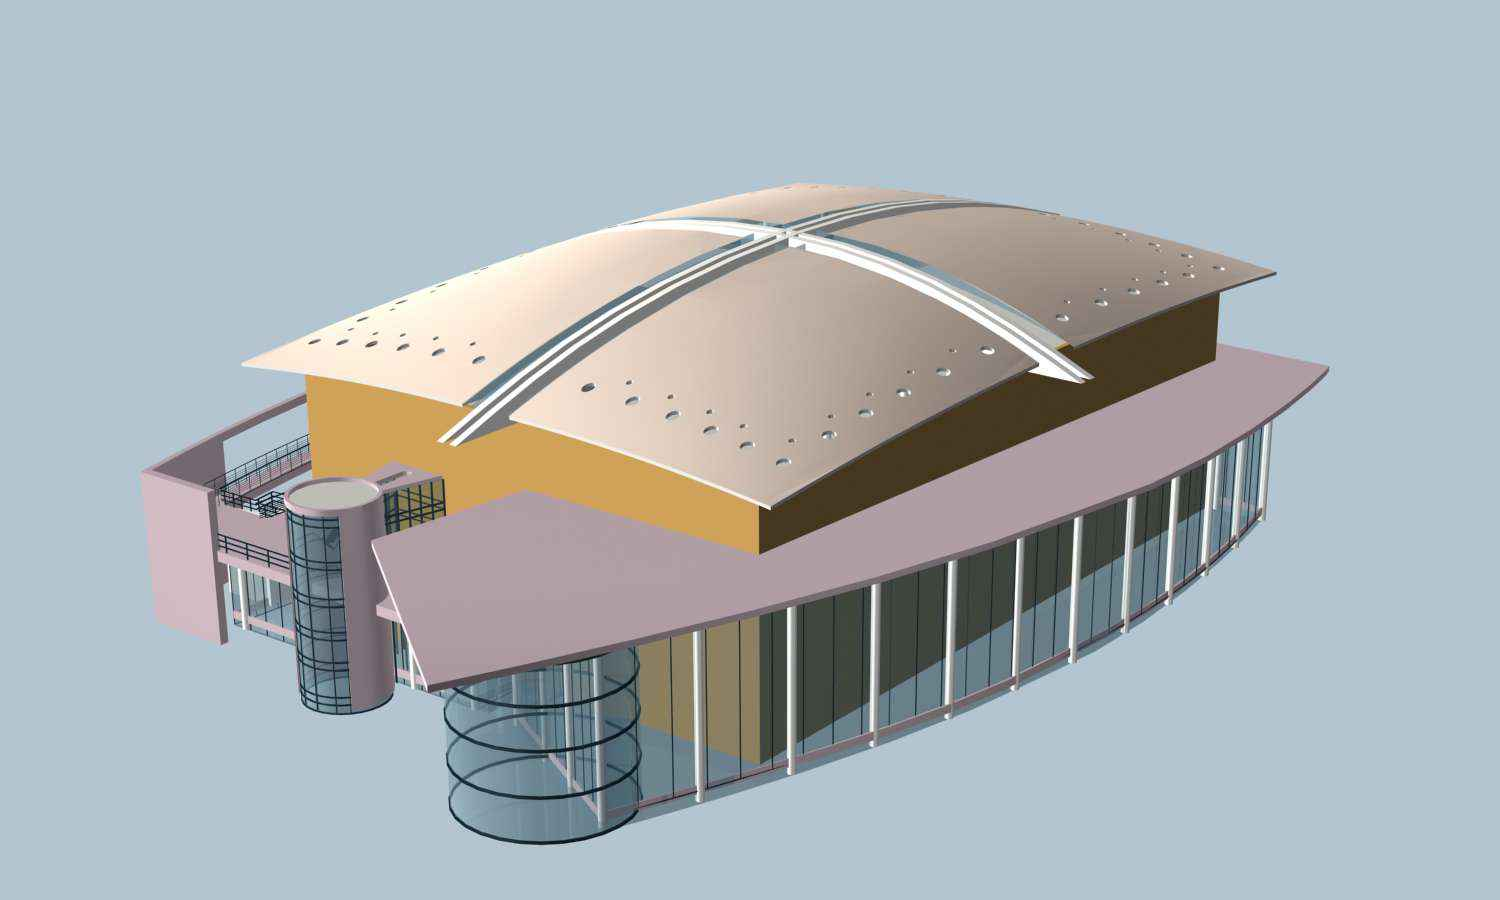 Stadium Cad Drawings 3 – Architectural Autocad Drawings,Blocks ...